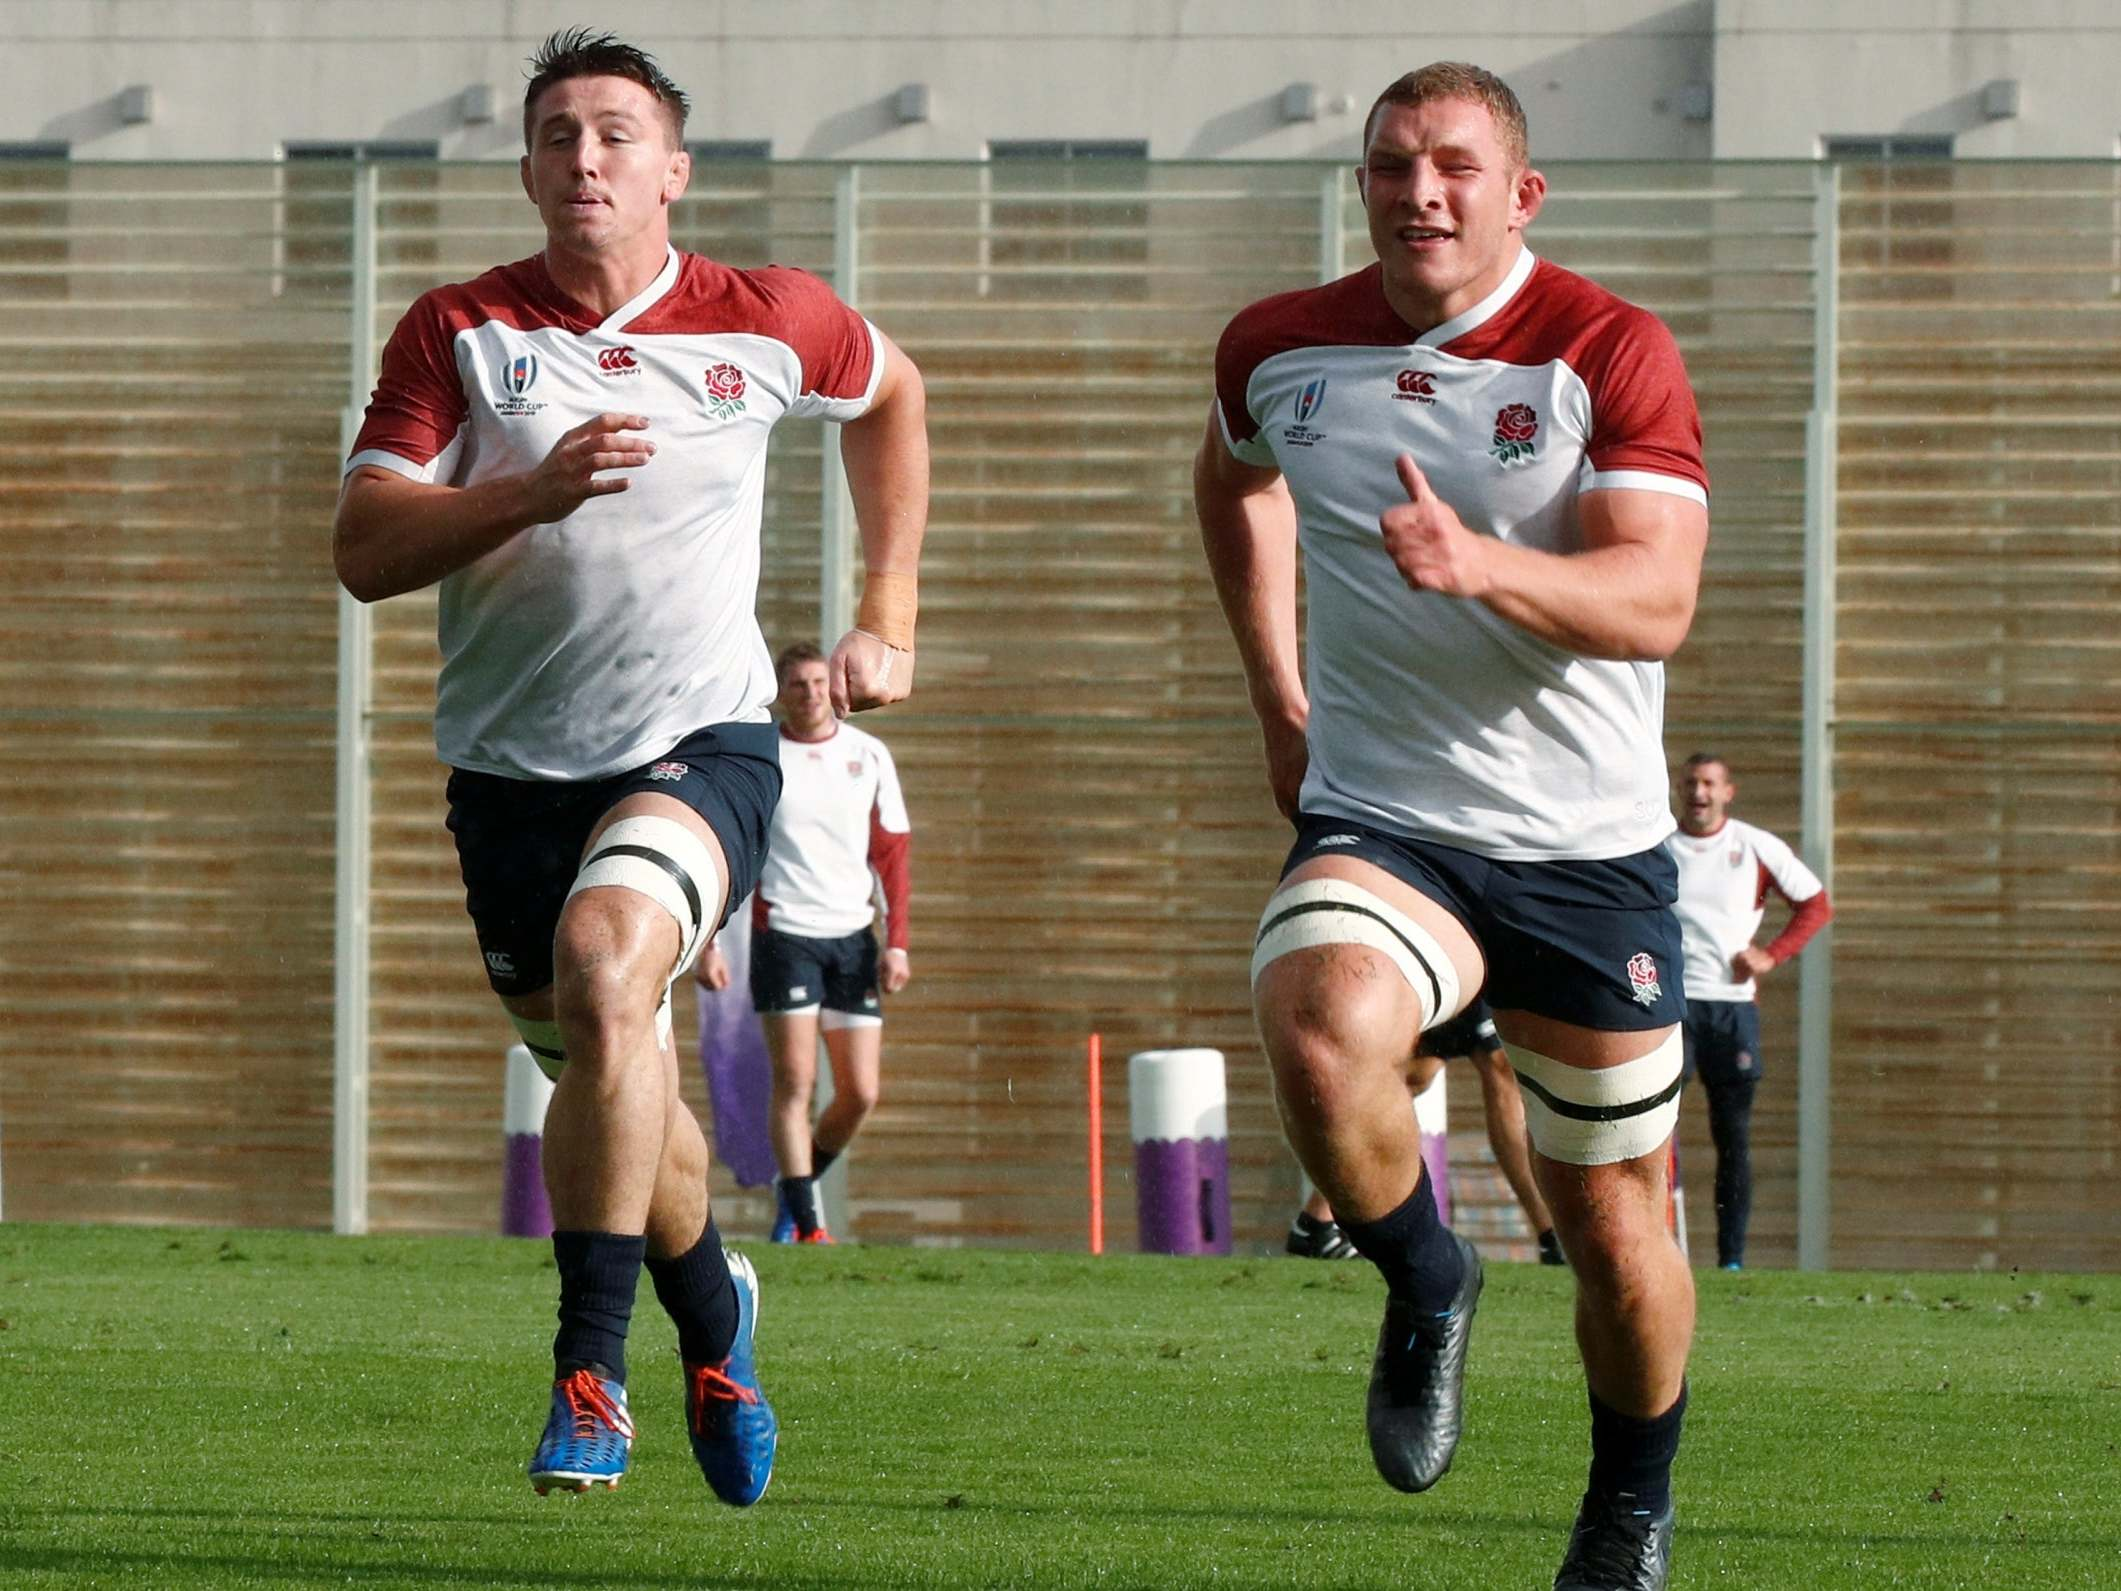 Rugby World Cup 2019: England's 'Kamikaze Kids' Tom Curry and Sam Underhill set out to electrocute Argentina